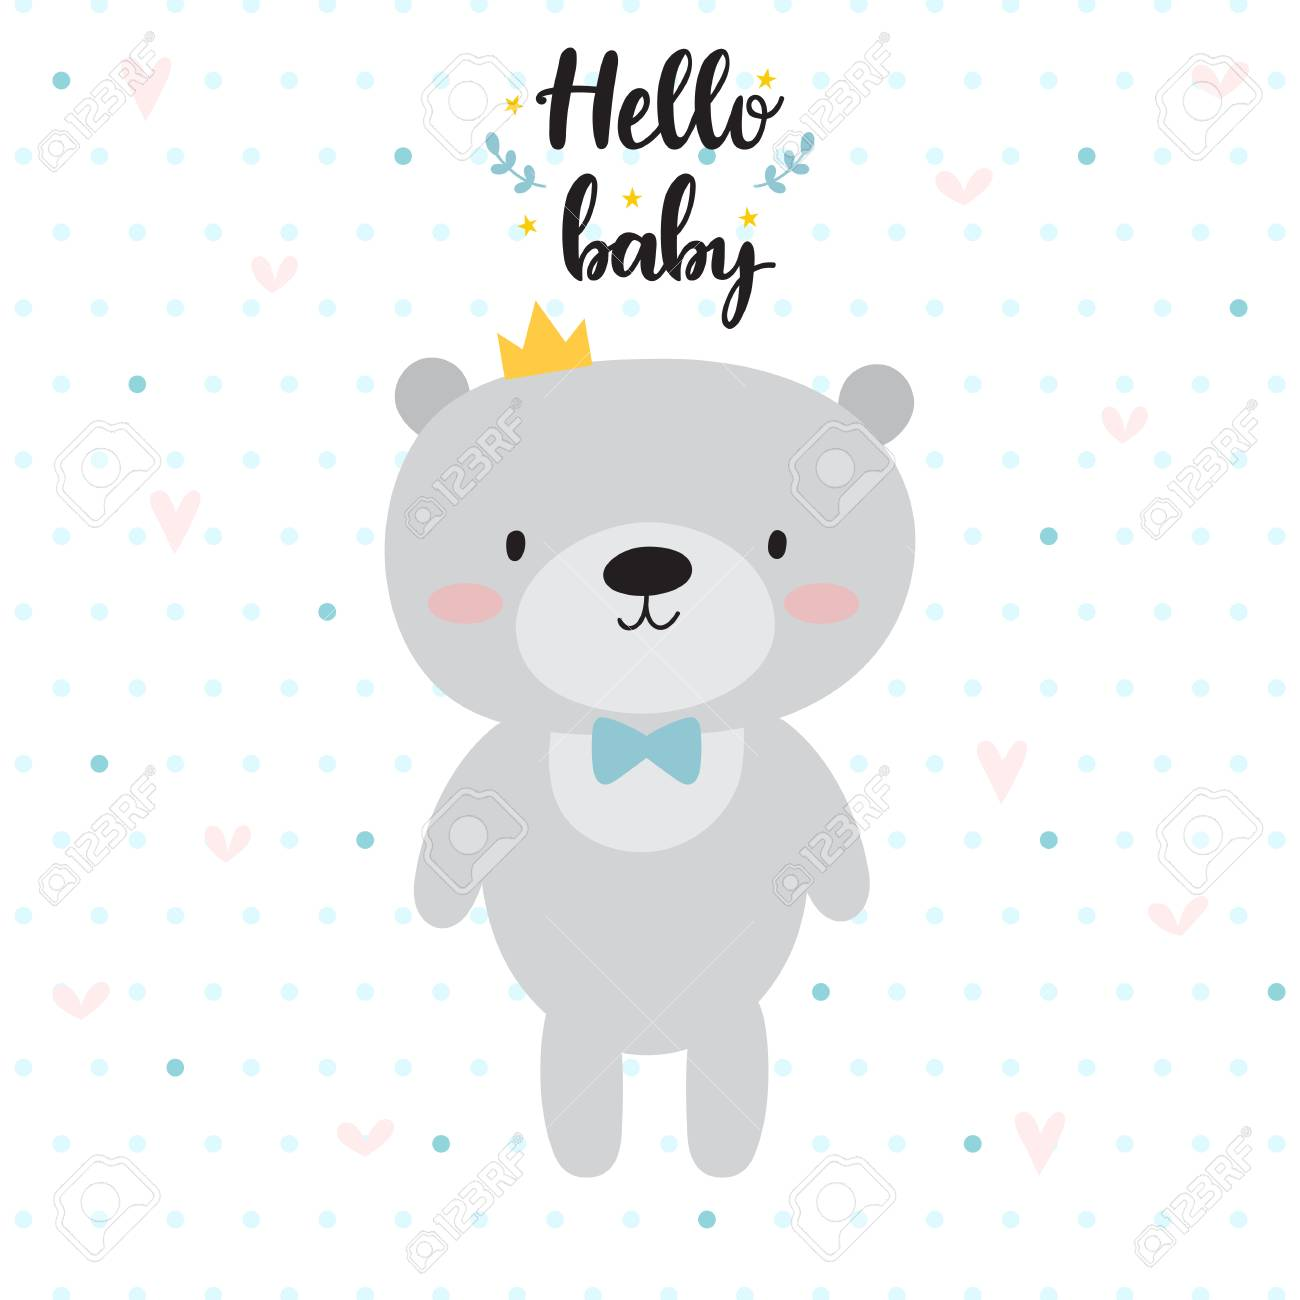 picture relating to Baby Shower Card Printable named Hello there youngster. Adorable card with cartoon undergo and crown. Child shower..